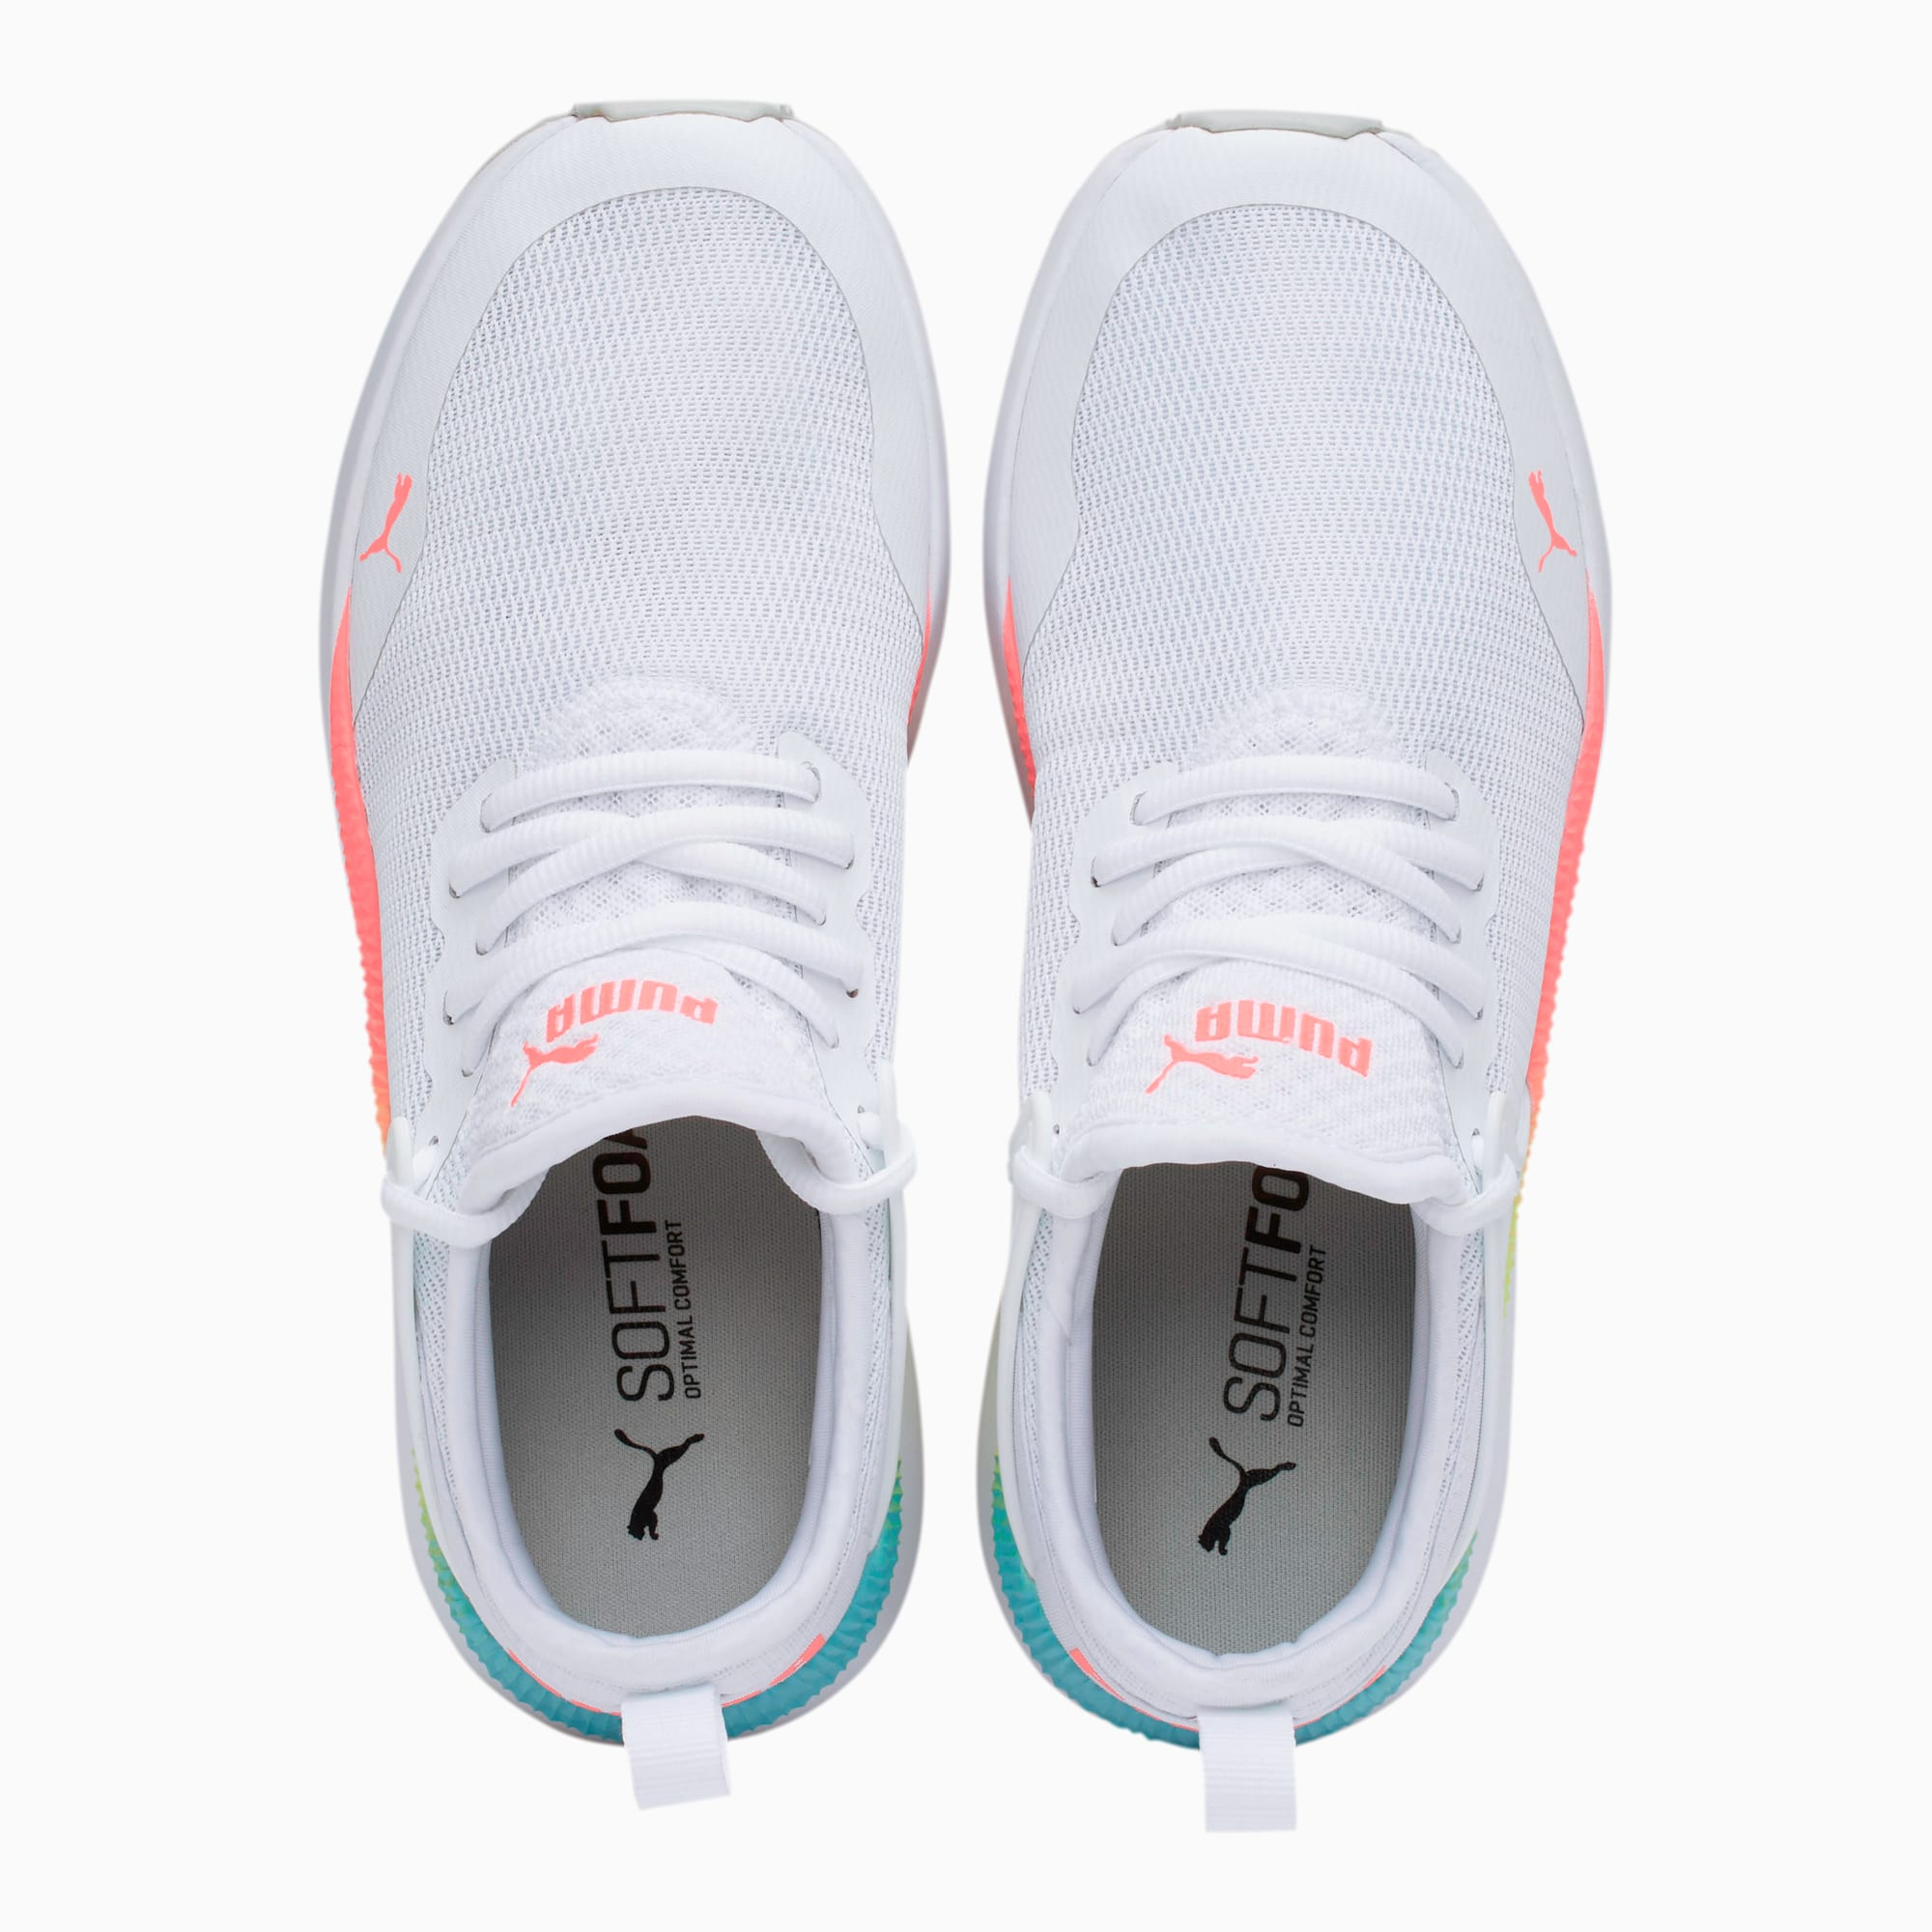 Pacer Next Cage Rainbow Women's Sneakers